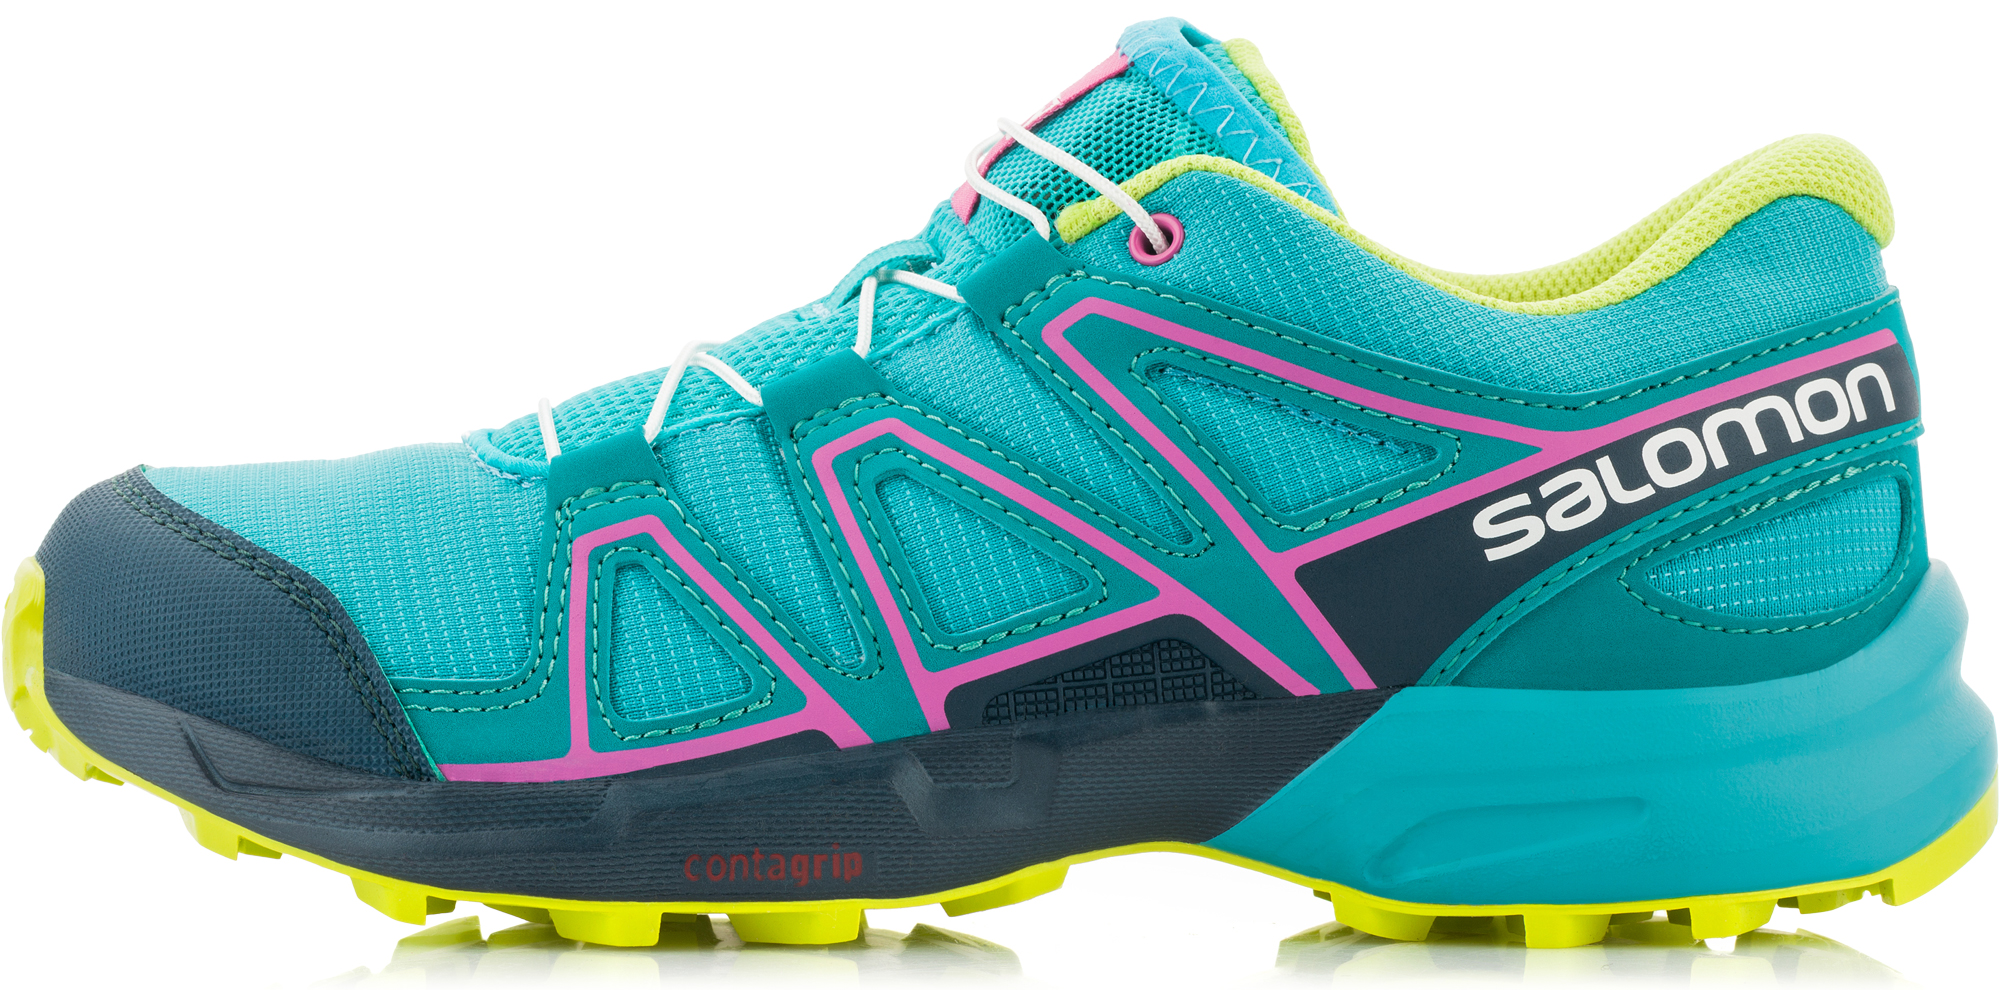 Salomon Полуботинки для девочек Salomon Speedcross salomon salomon craft 17 18